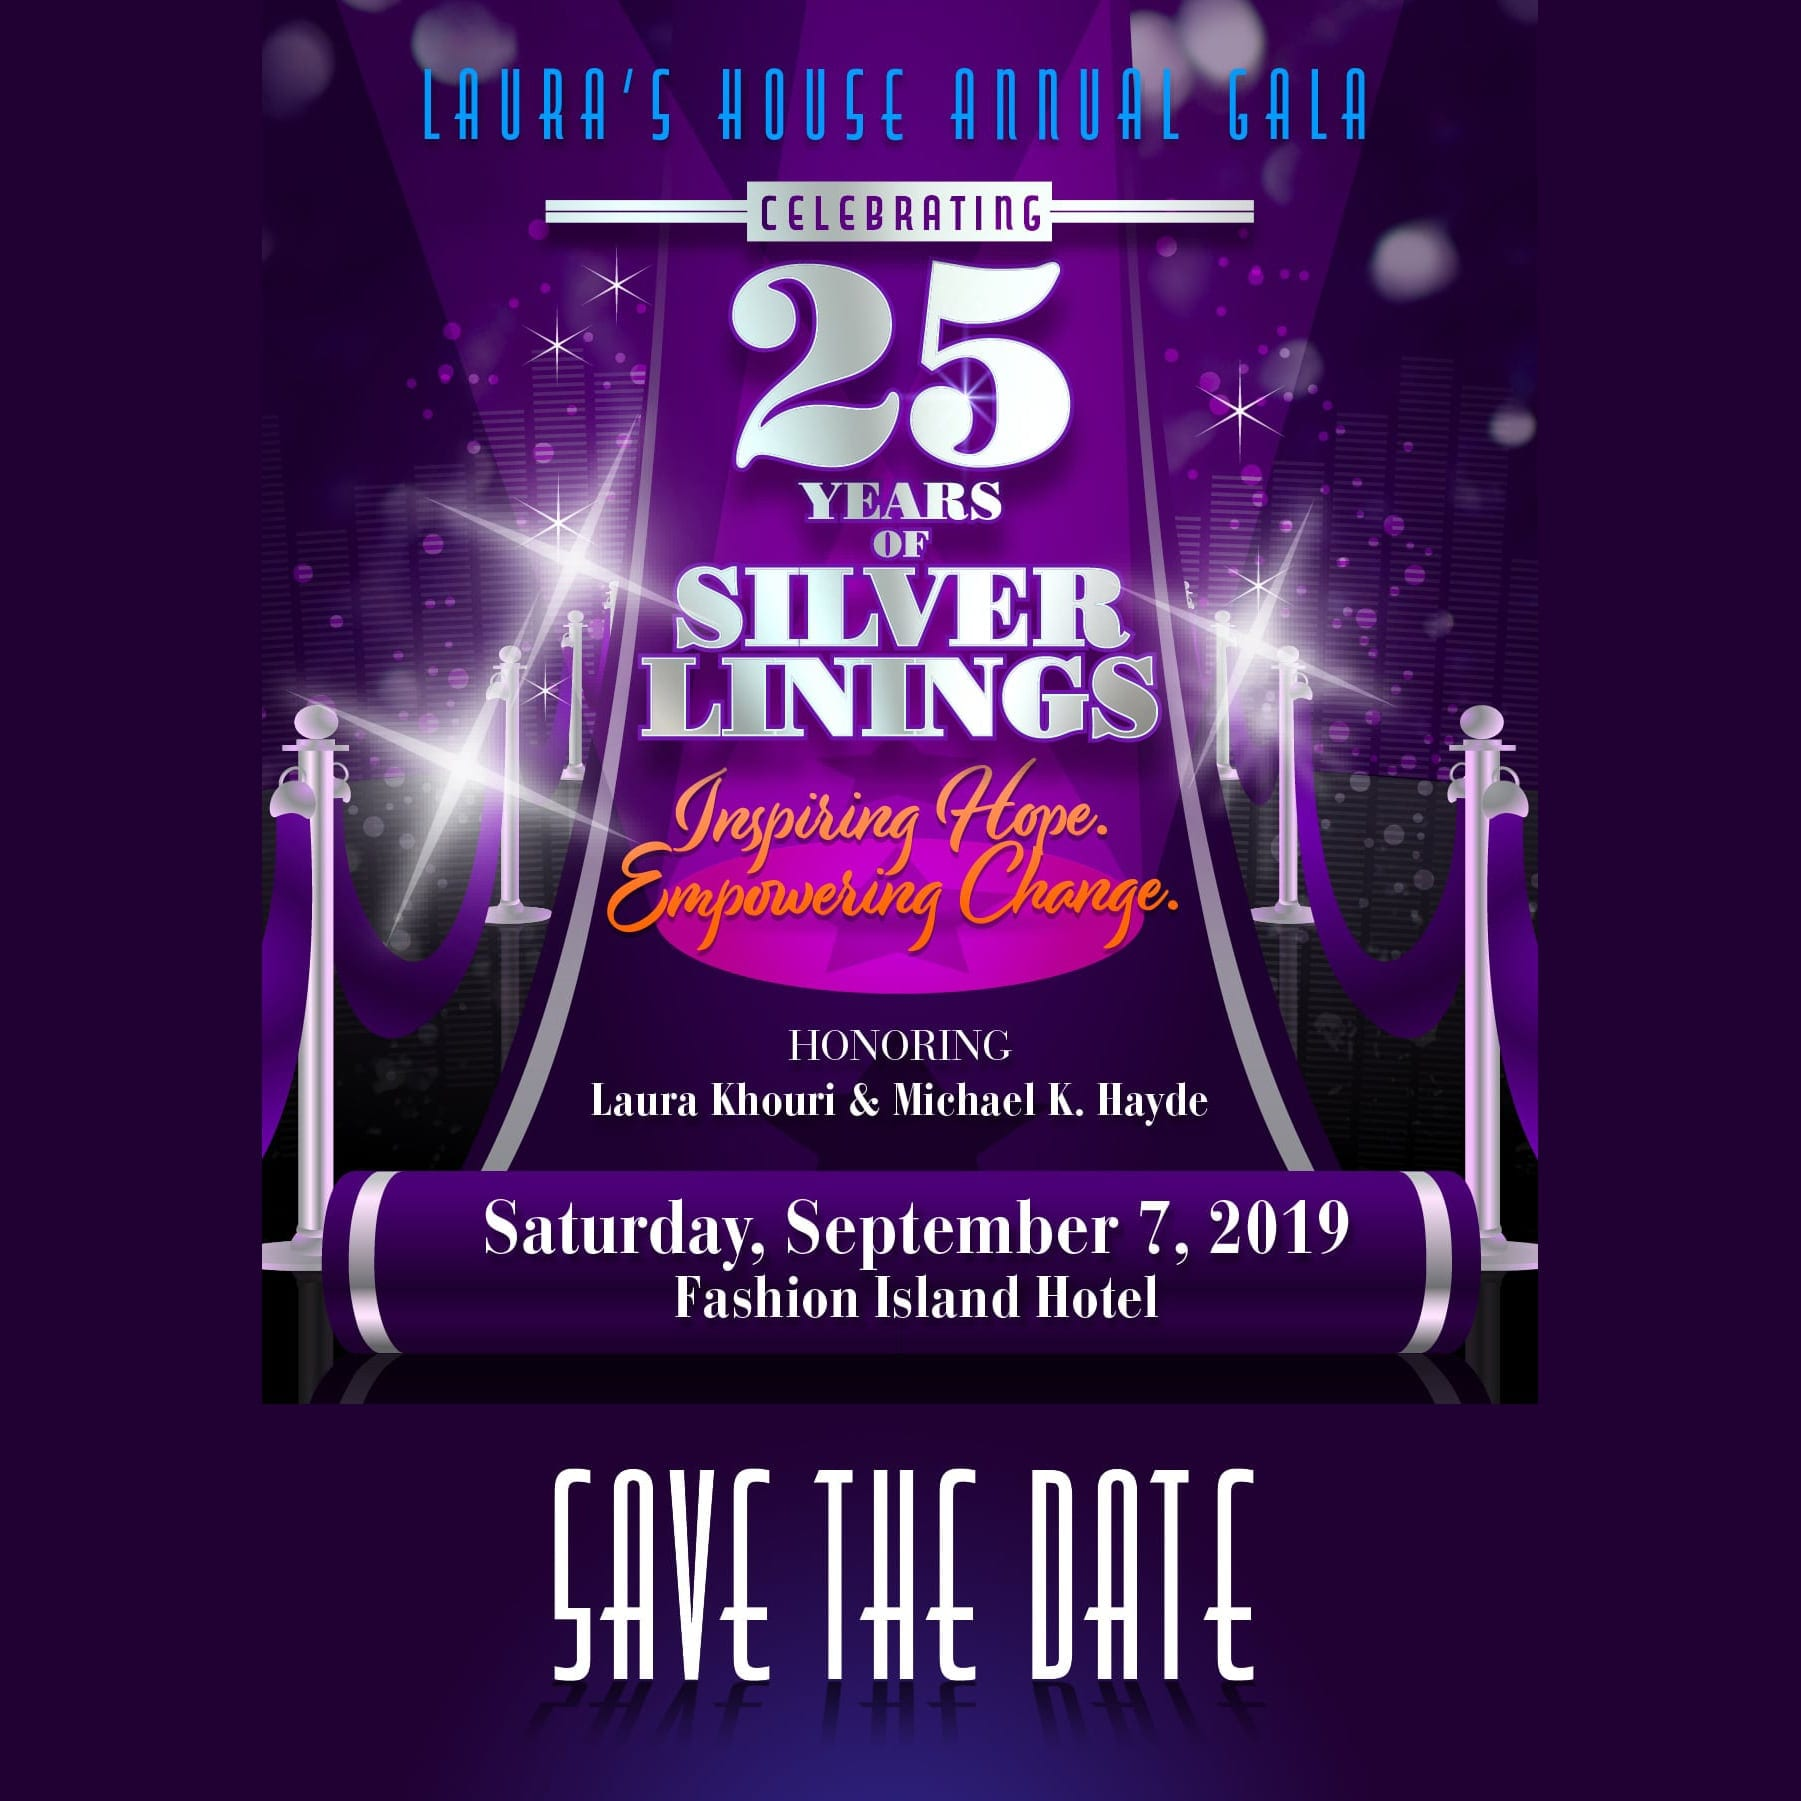 25th Anniversary Gala September 7, 2019 at the Fashion Island Hotel